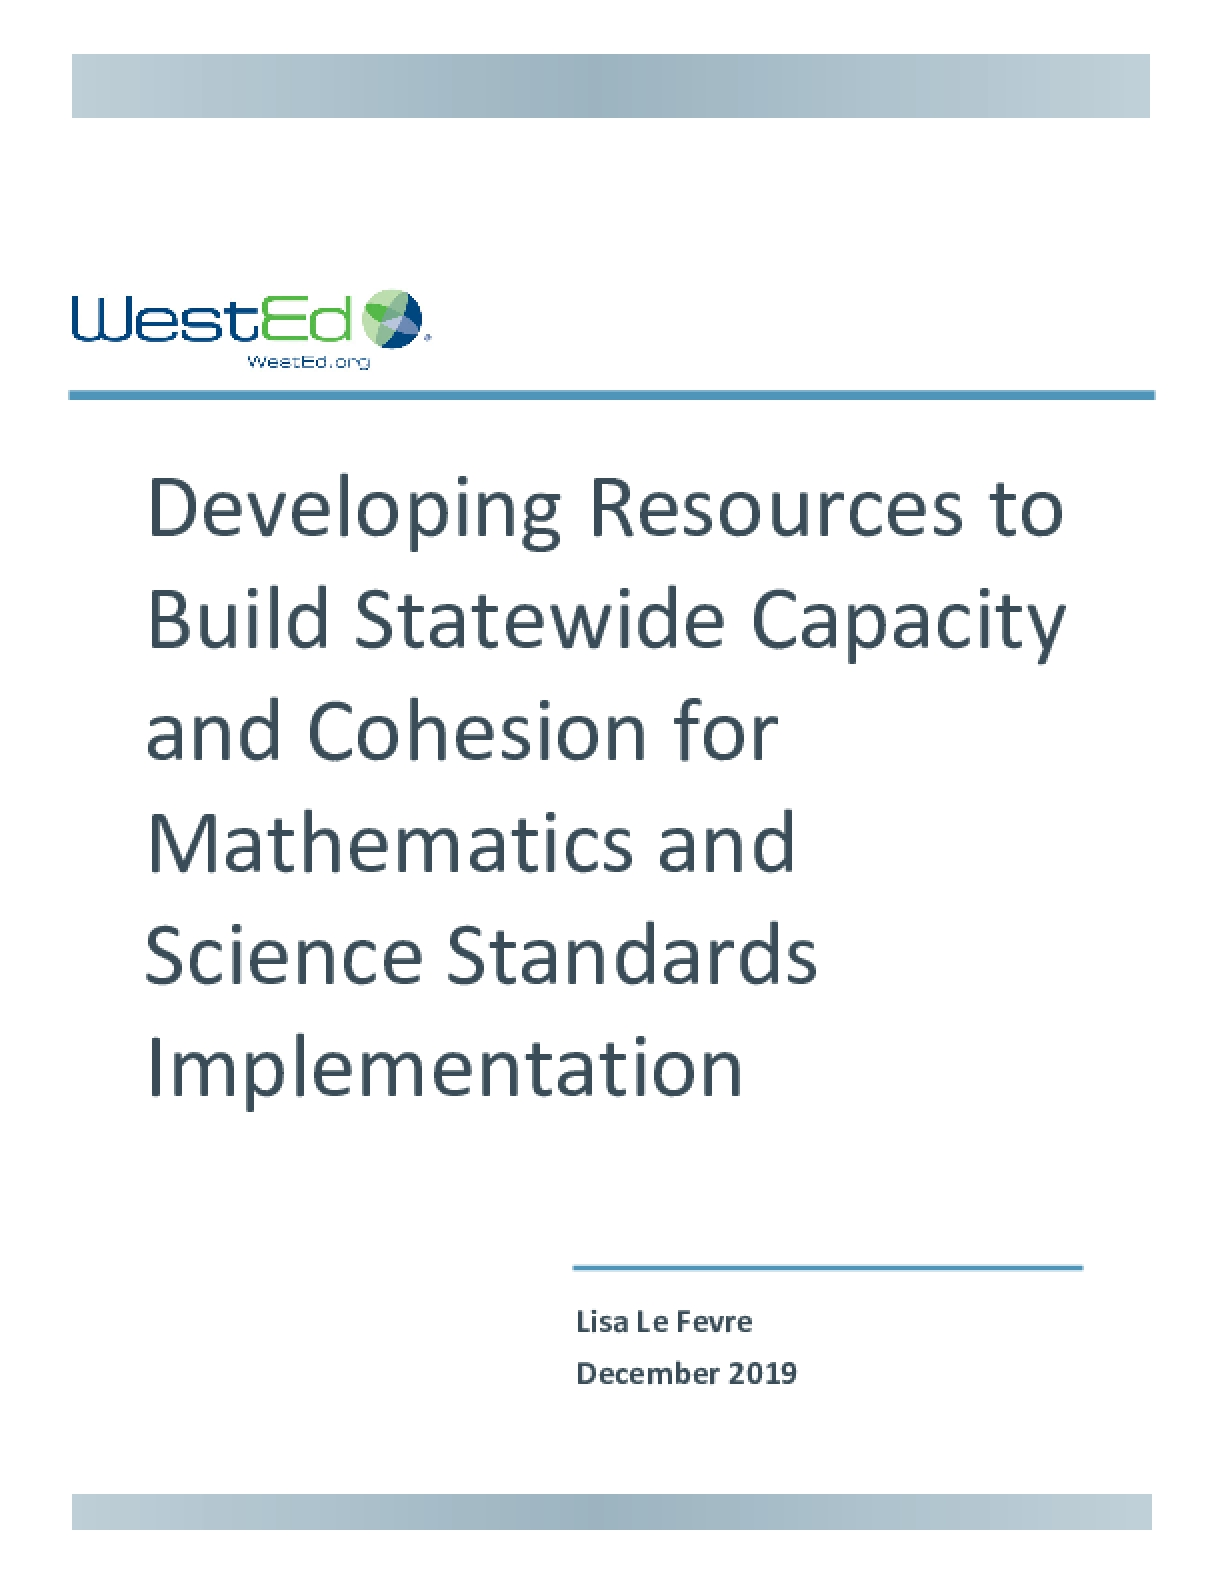 Developing Resources to Build Statewide Capacity and Cohesion for Mathematics and Science Standards Implementation